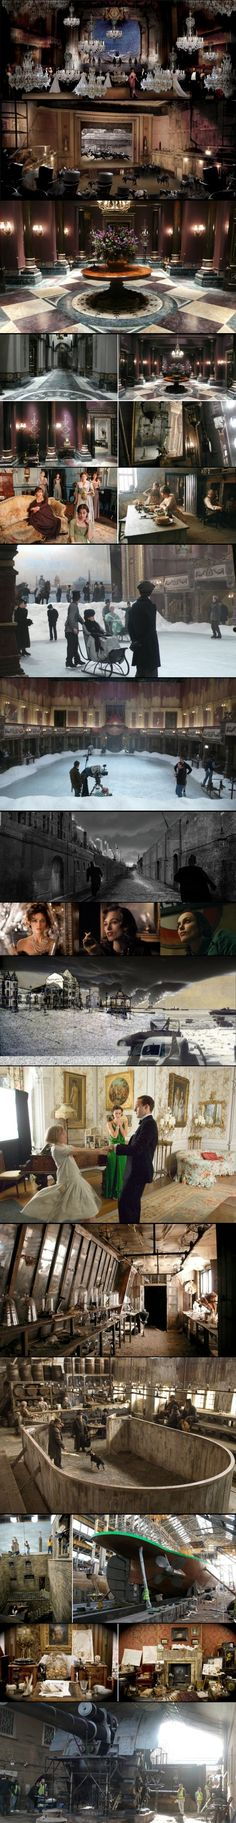 the art of set design - Anna Karenina, Atonment, Sherlock Holmes - Sarah Greenwood